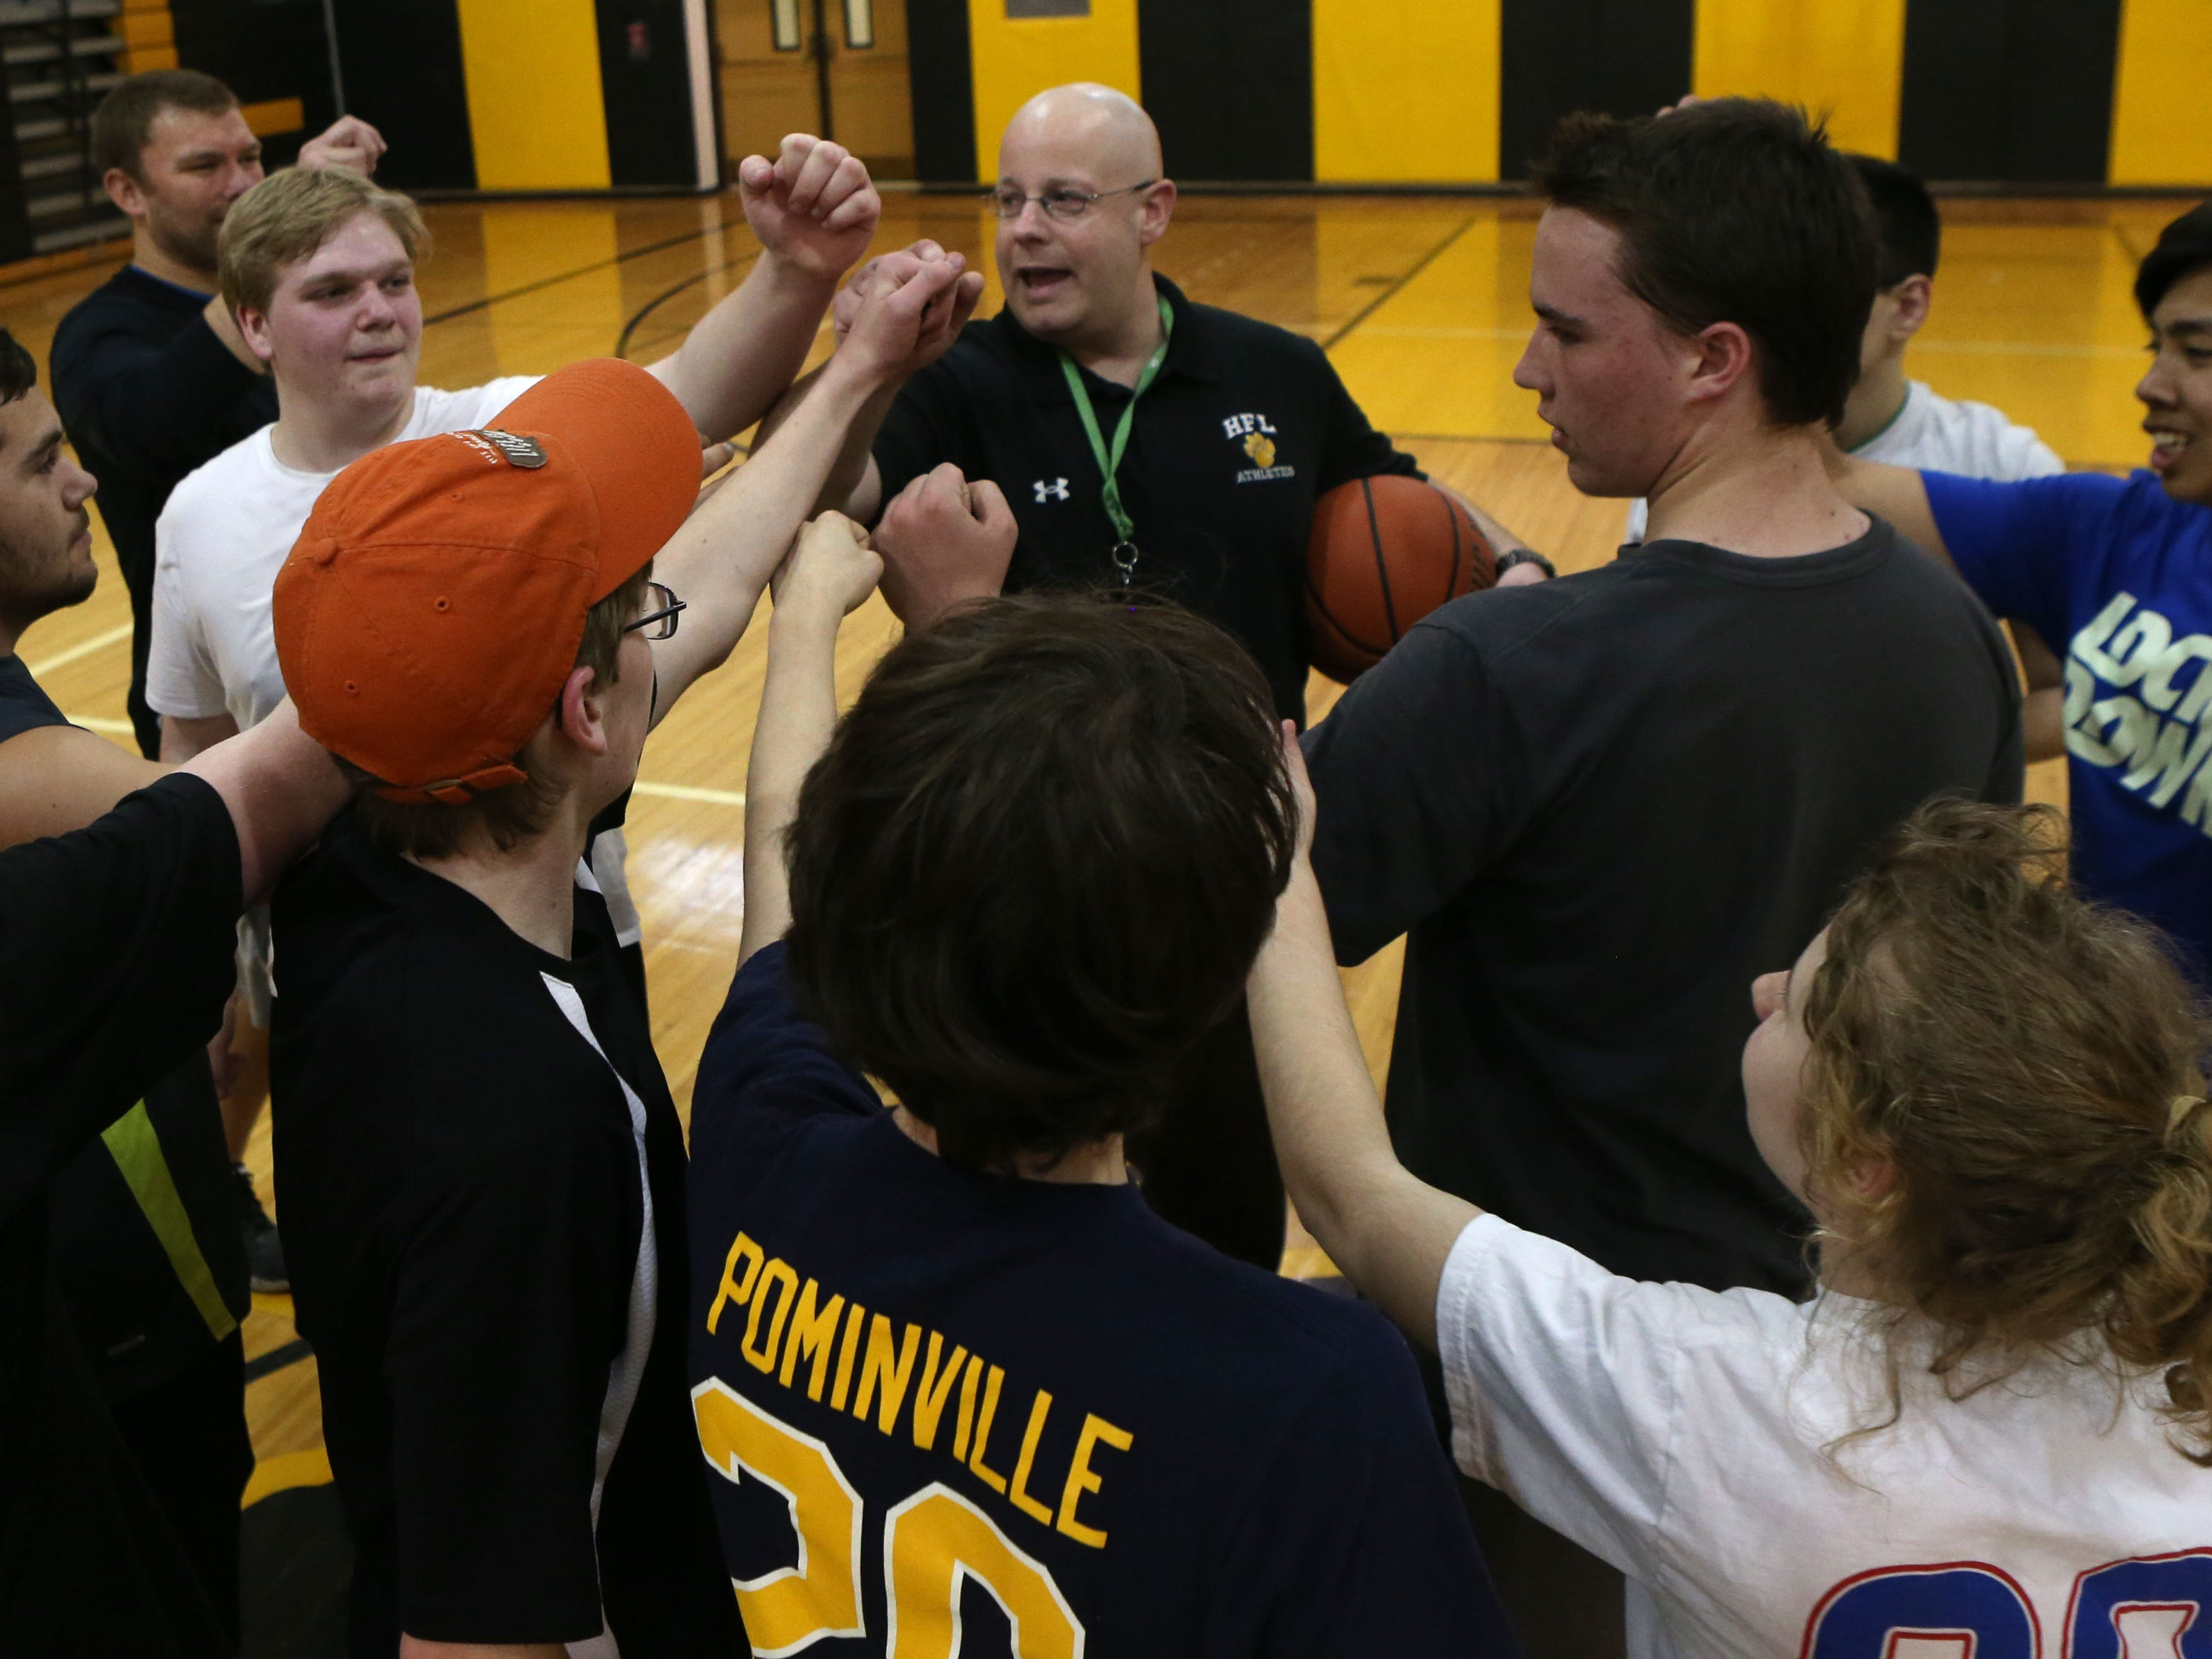 Jim Arrigenna, Adaptive PE Teacher and coach, rallies his team during the second practice for Honeoye Falls-Lima's unified basketball team.